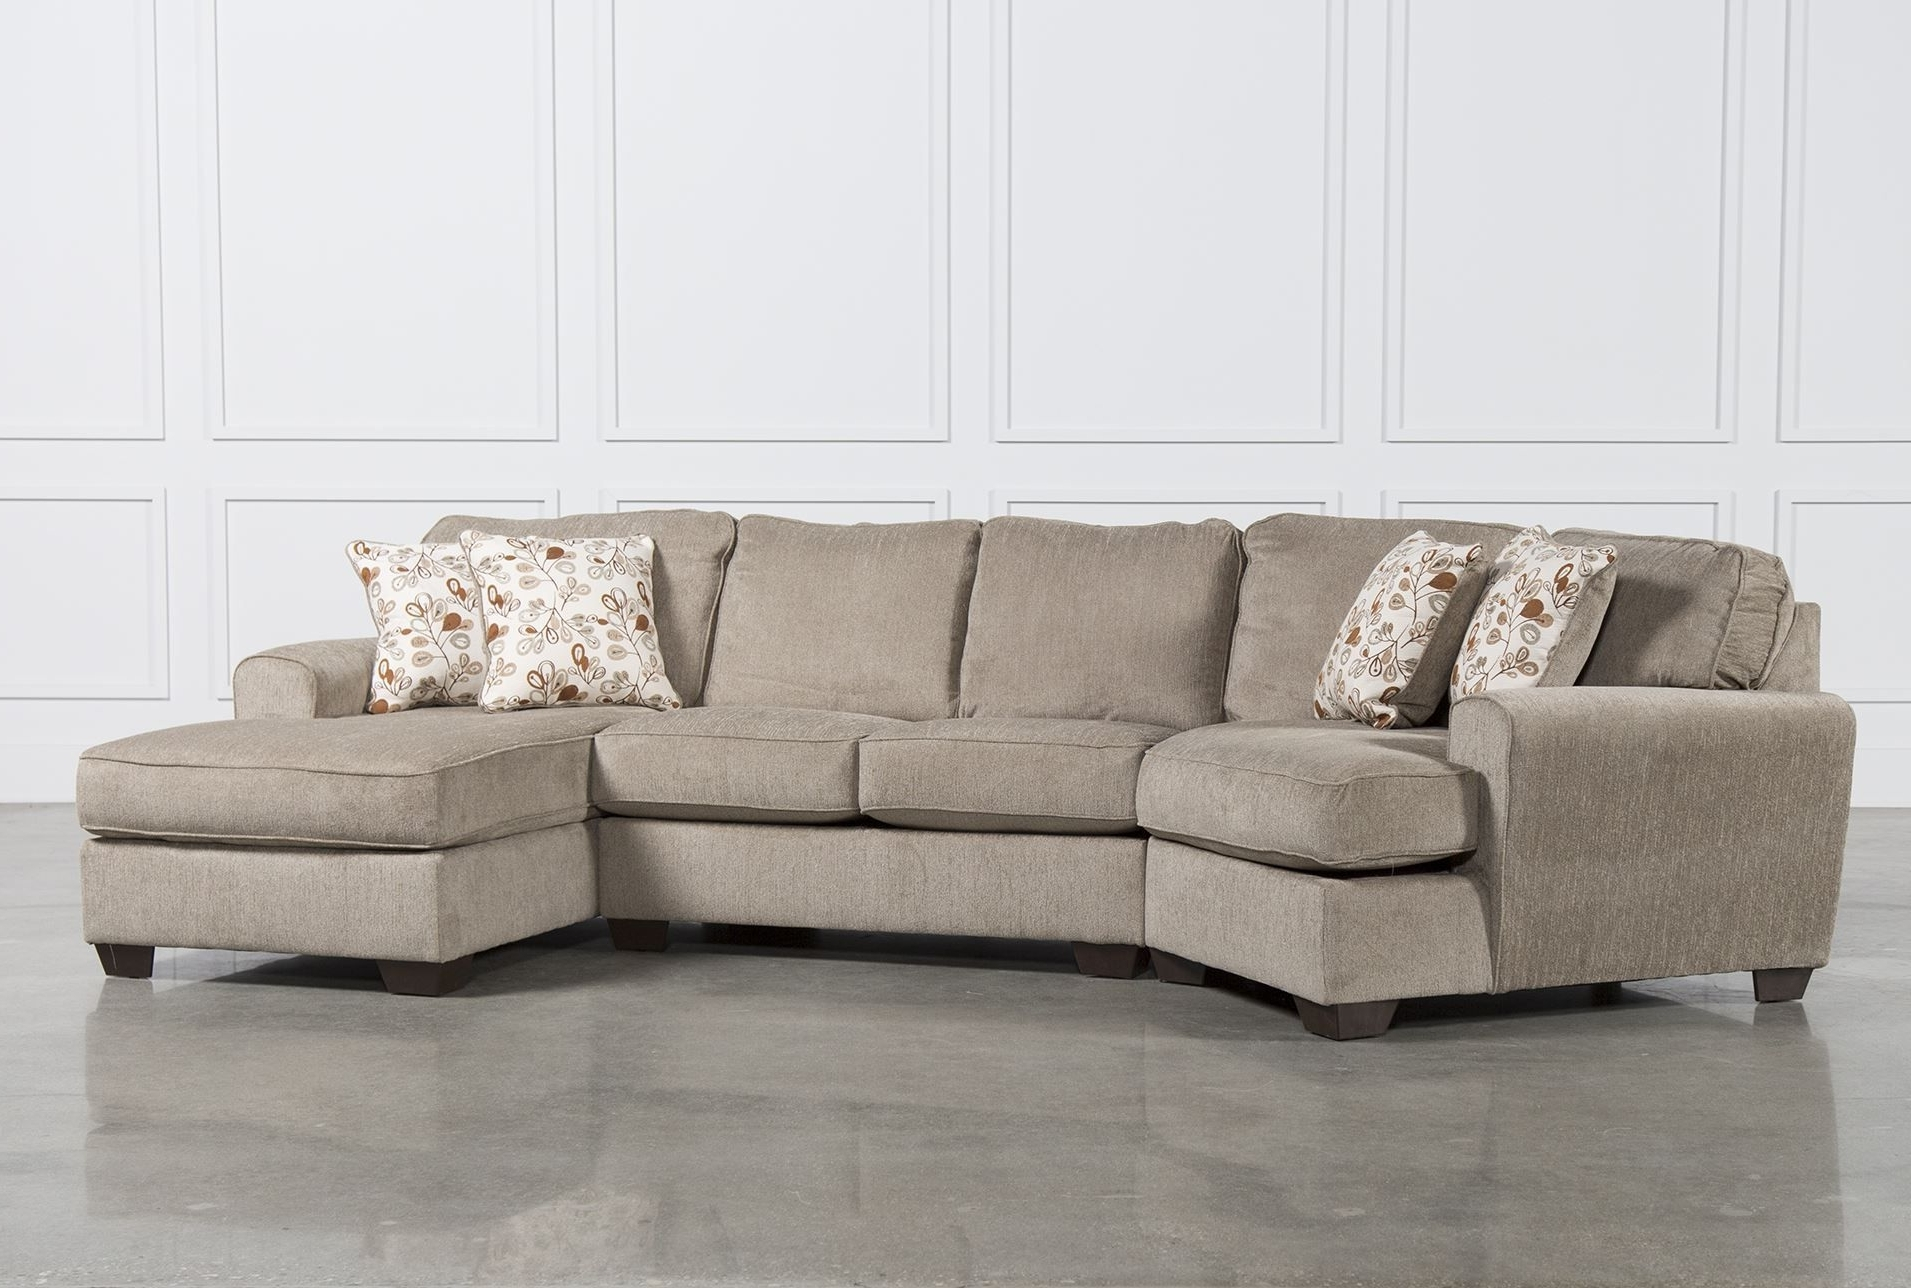 Patola Park 3 Piece Cuddler Sectional W/raf Corner Chaise (View 12 of 15)